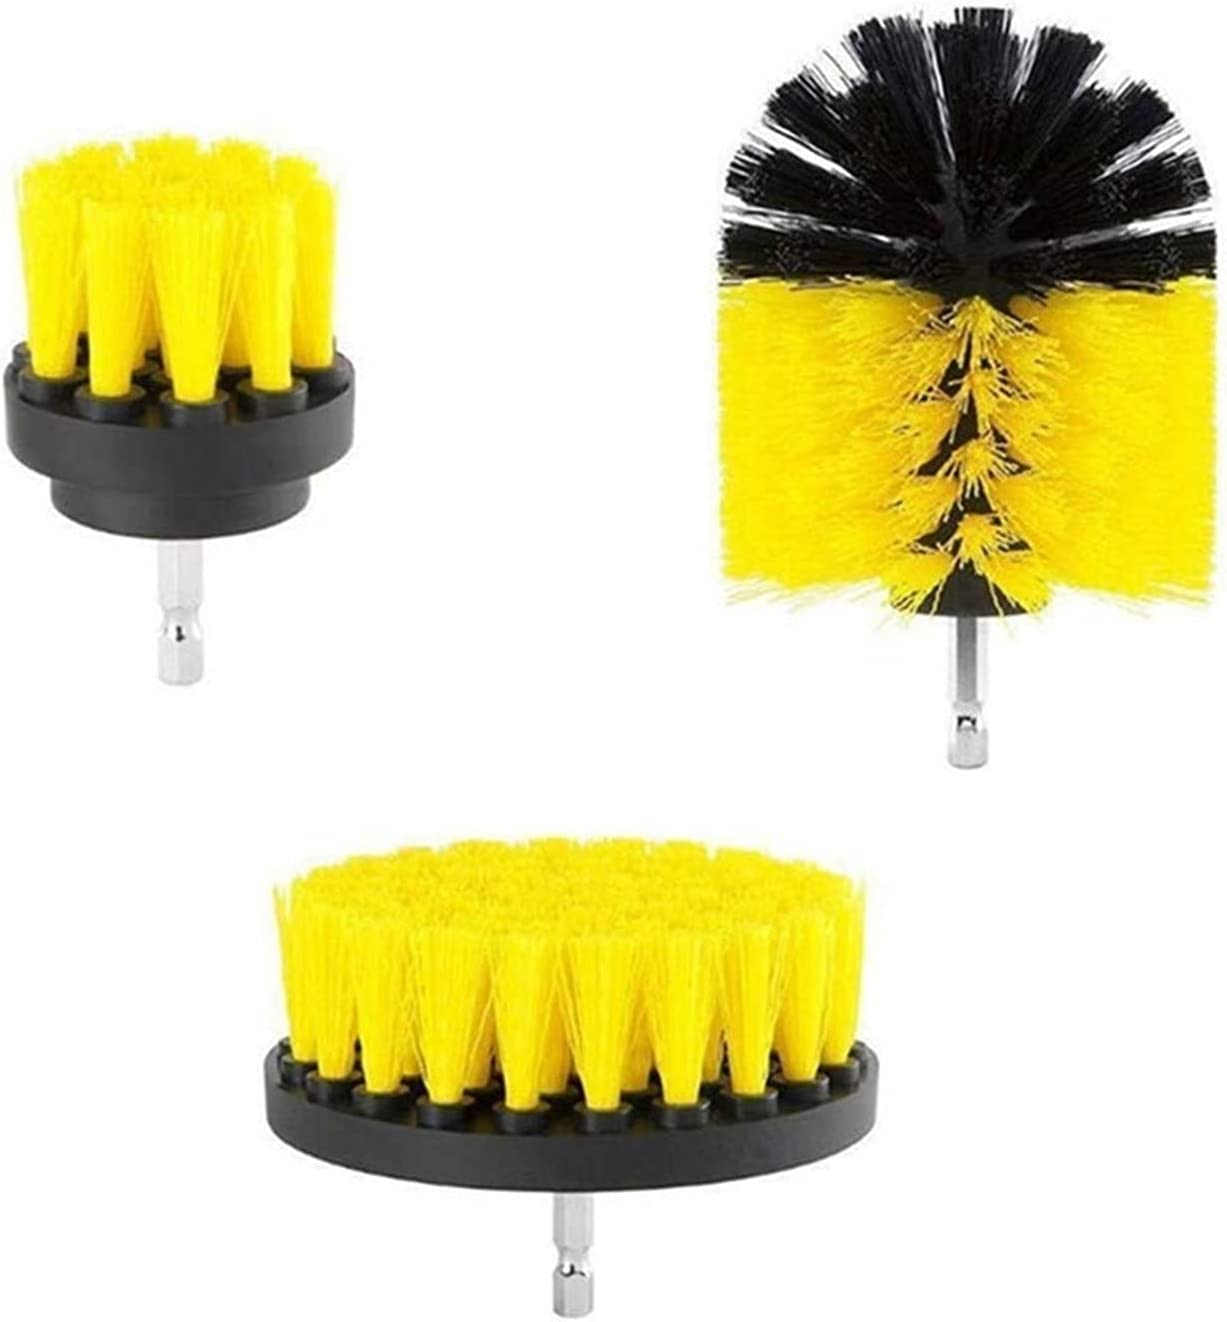 LGYSLJXB 3 Pieces set Of Drill Cleaning Suitable Max Max 52% OFF 61% OFF Kit Brush